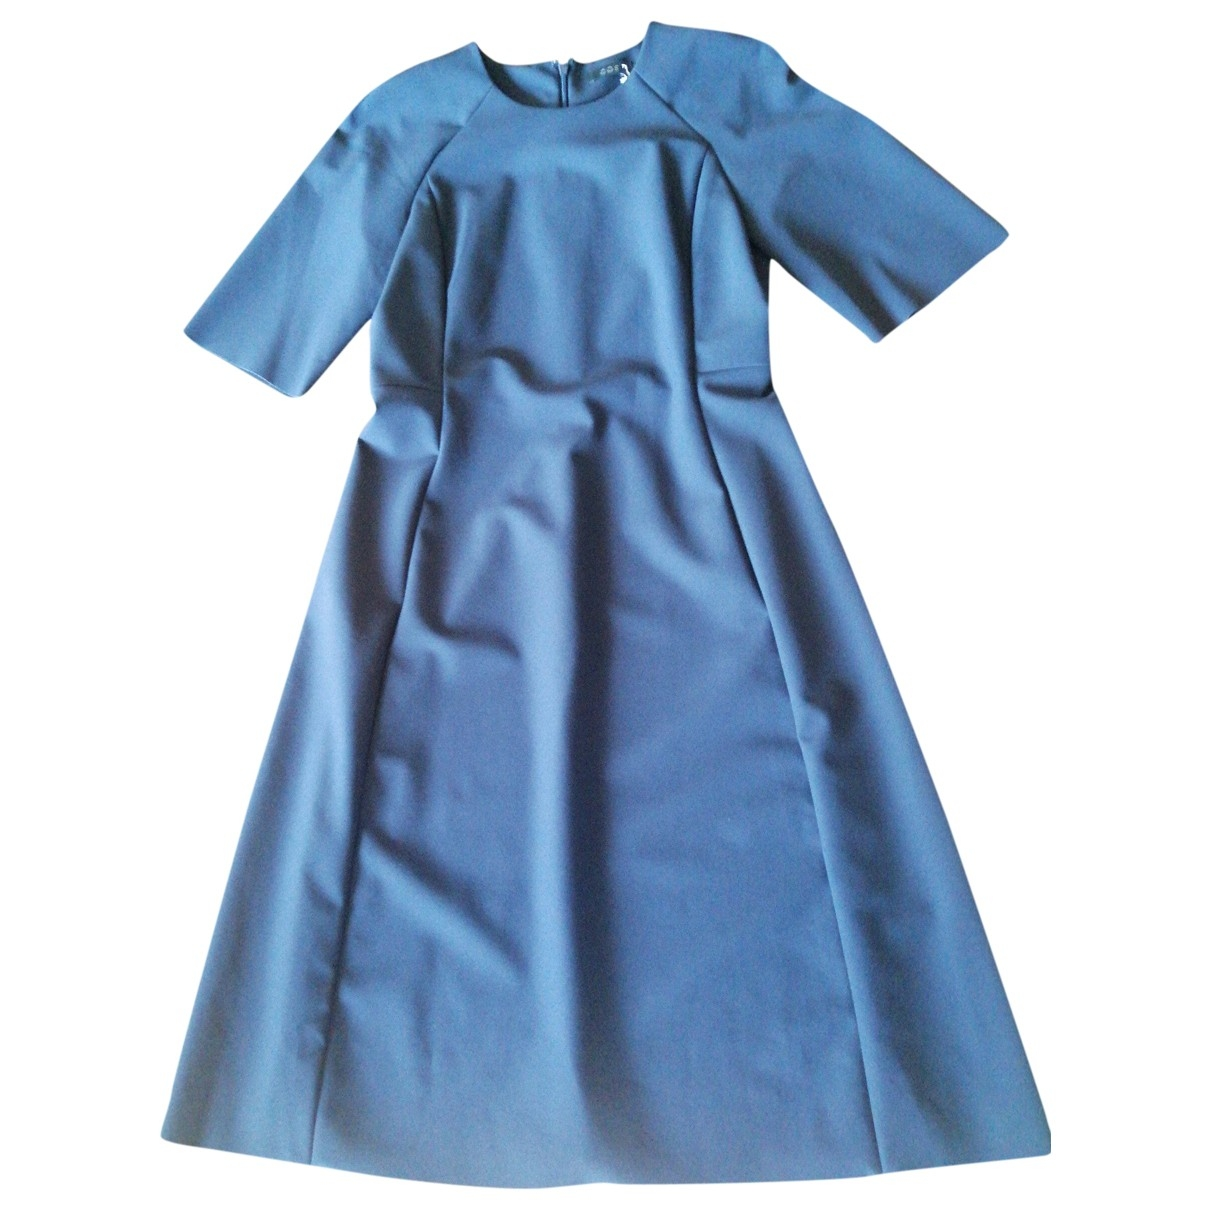 Cos \N Blue dress for Women 38 FR